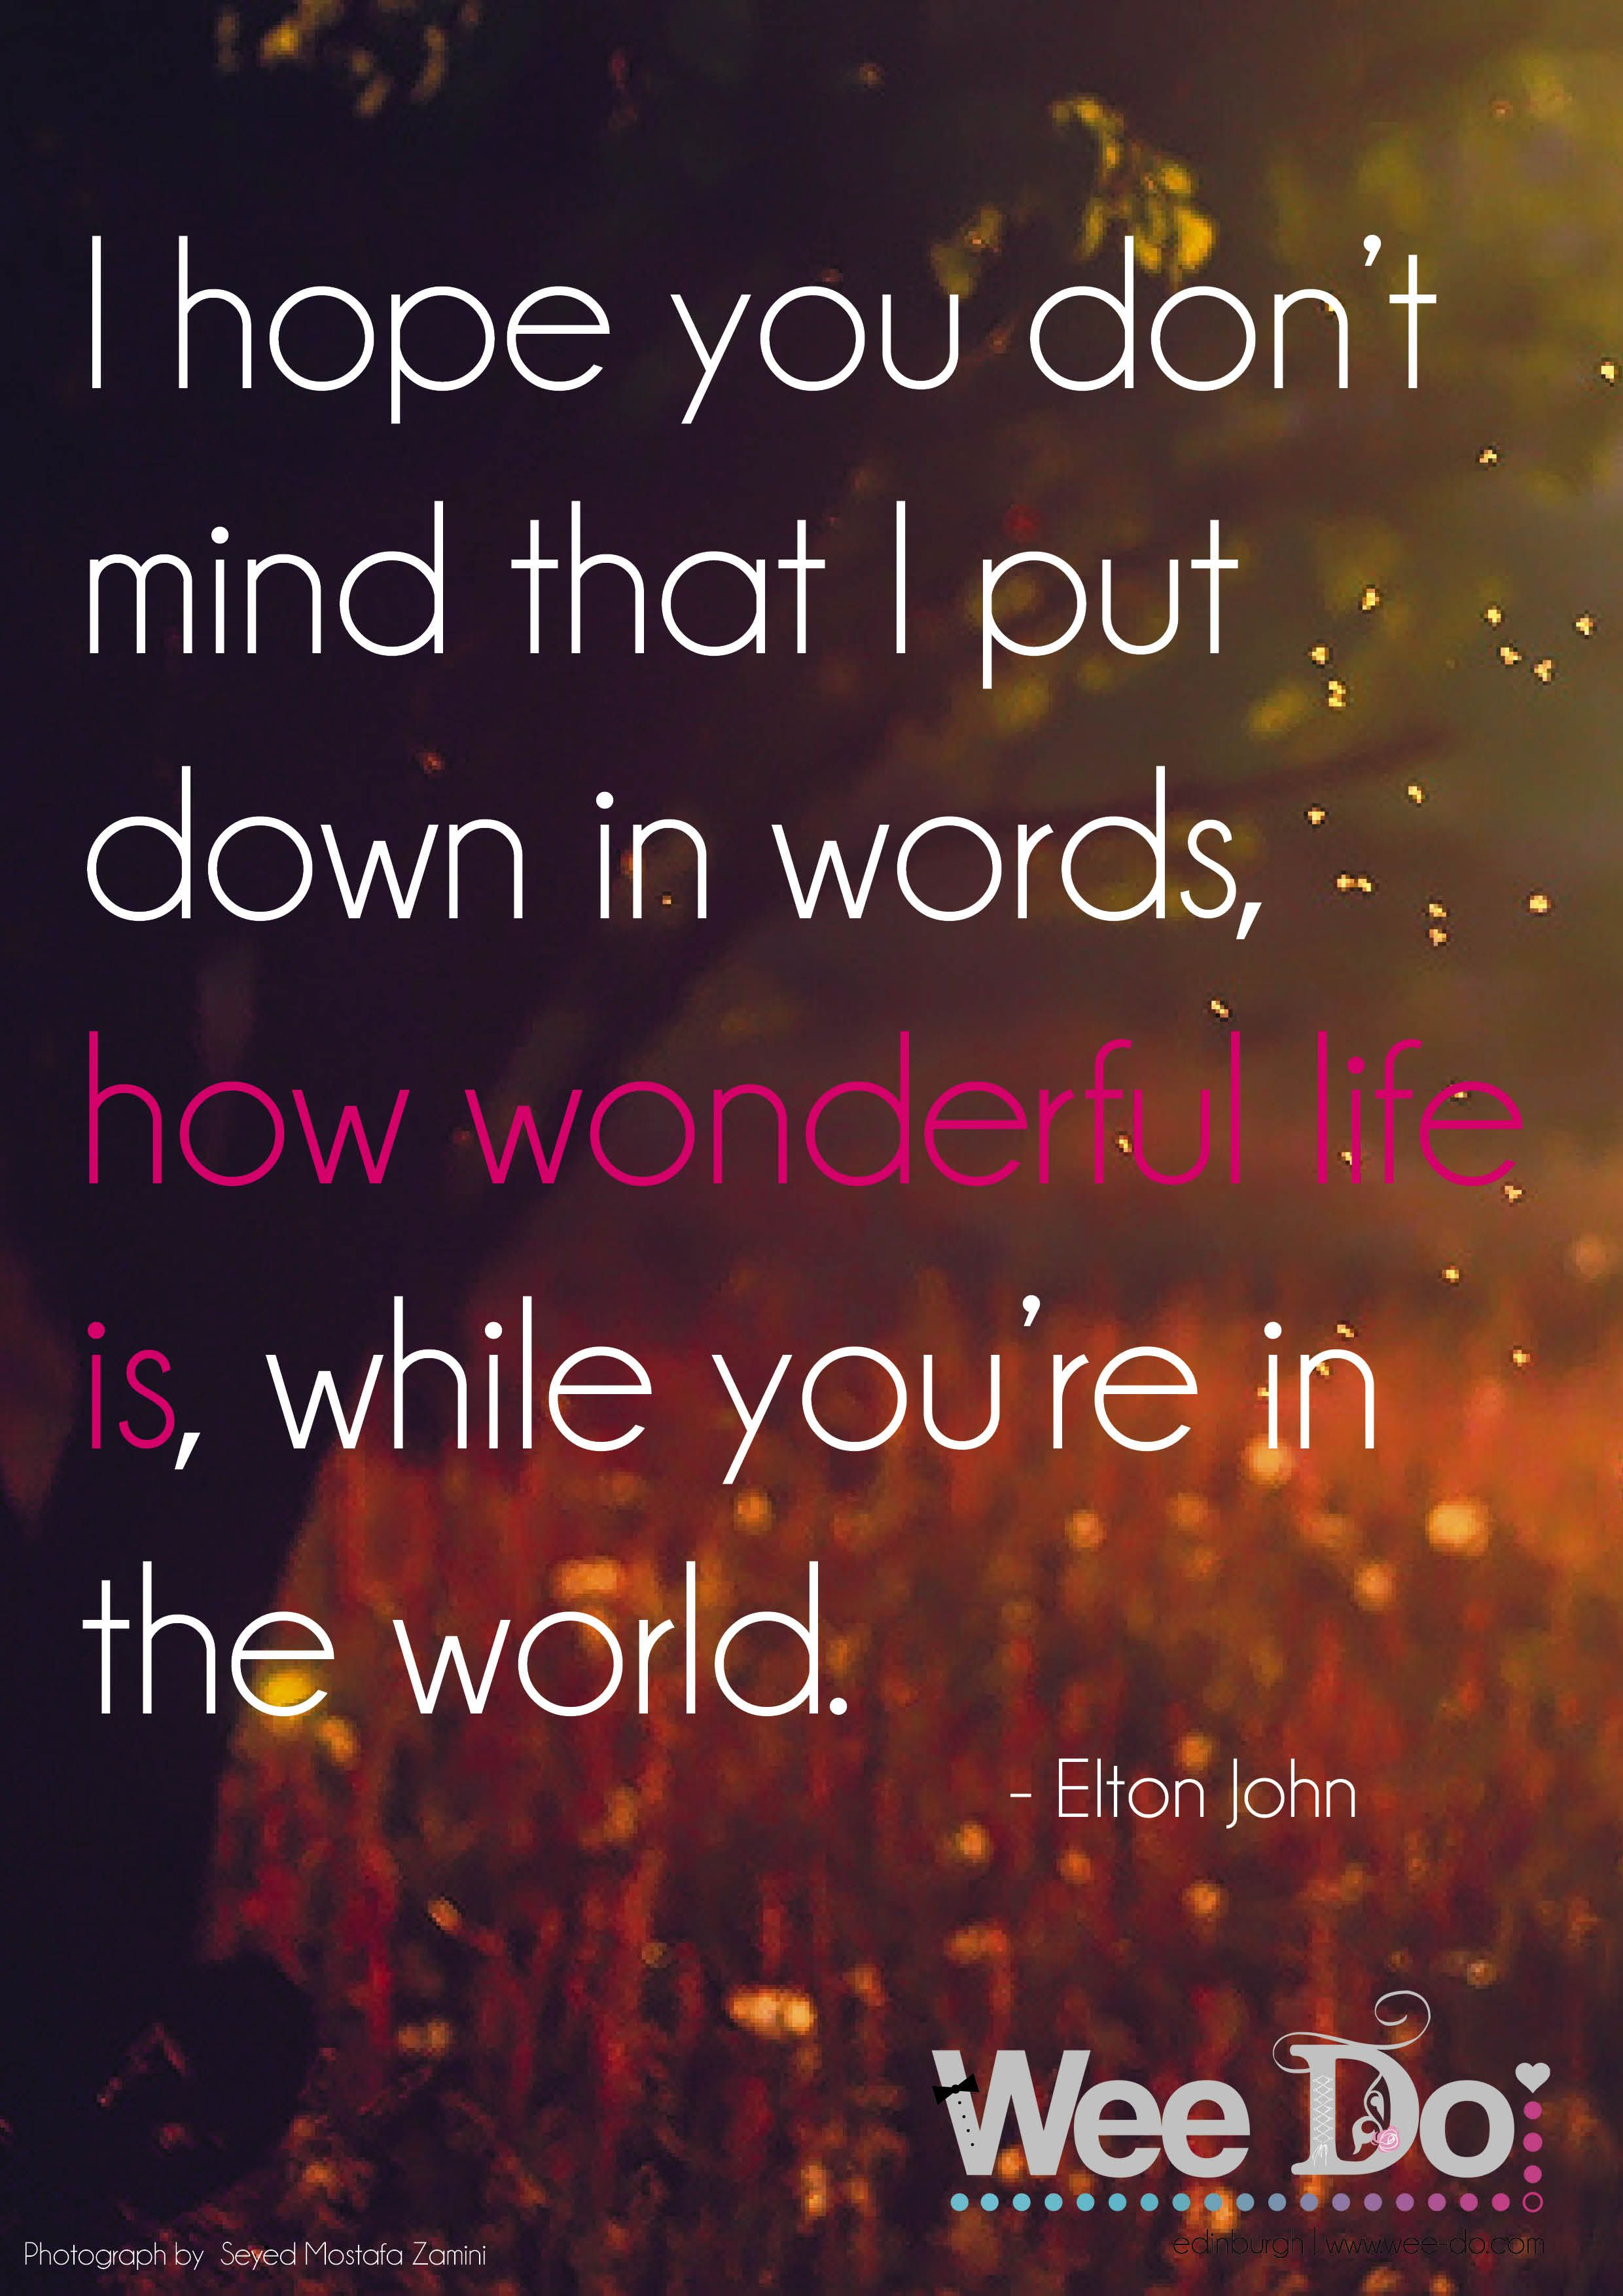 Elton John Love Quotes From Songs Love Quotes Song Quotes Elton John Quotes